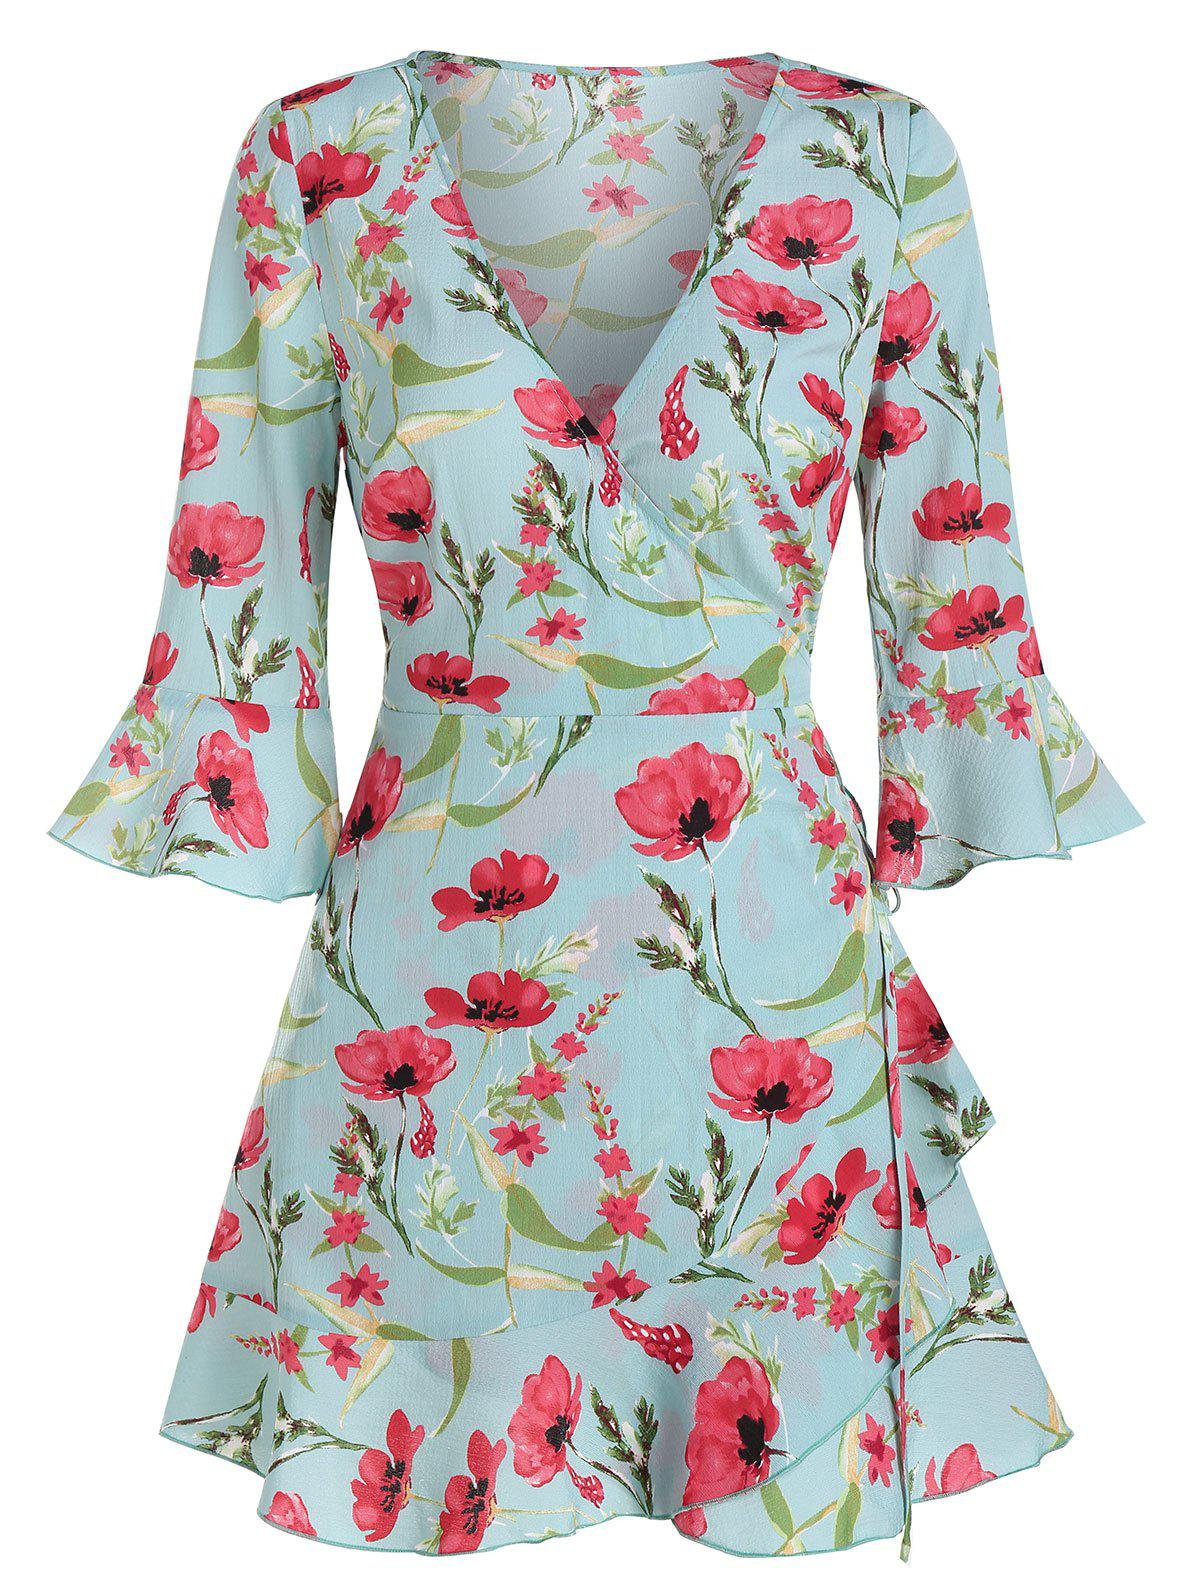 Chic Poet Sleeve Floral Print Wrap Dress